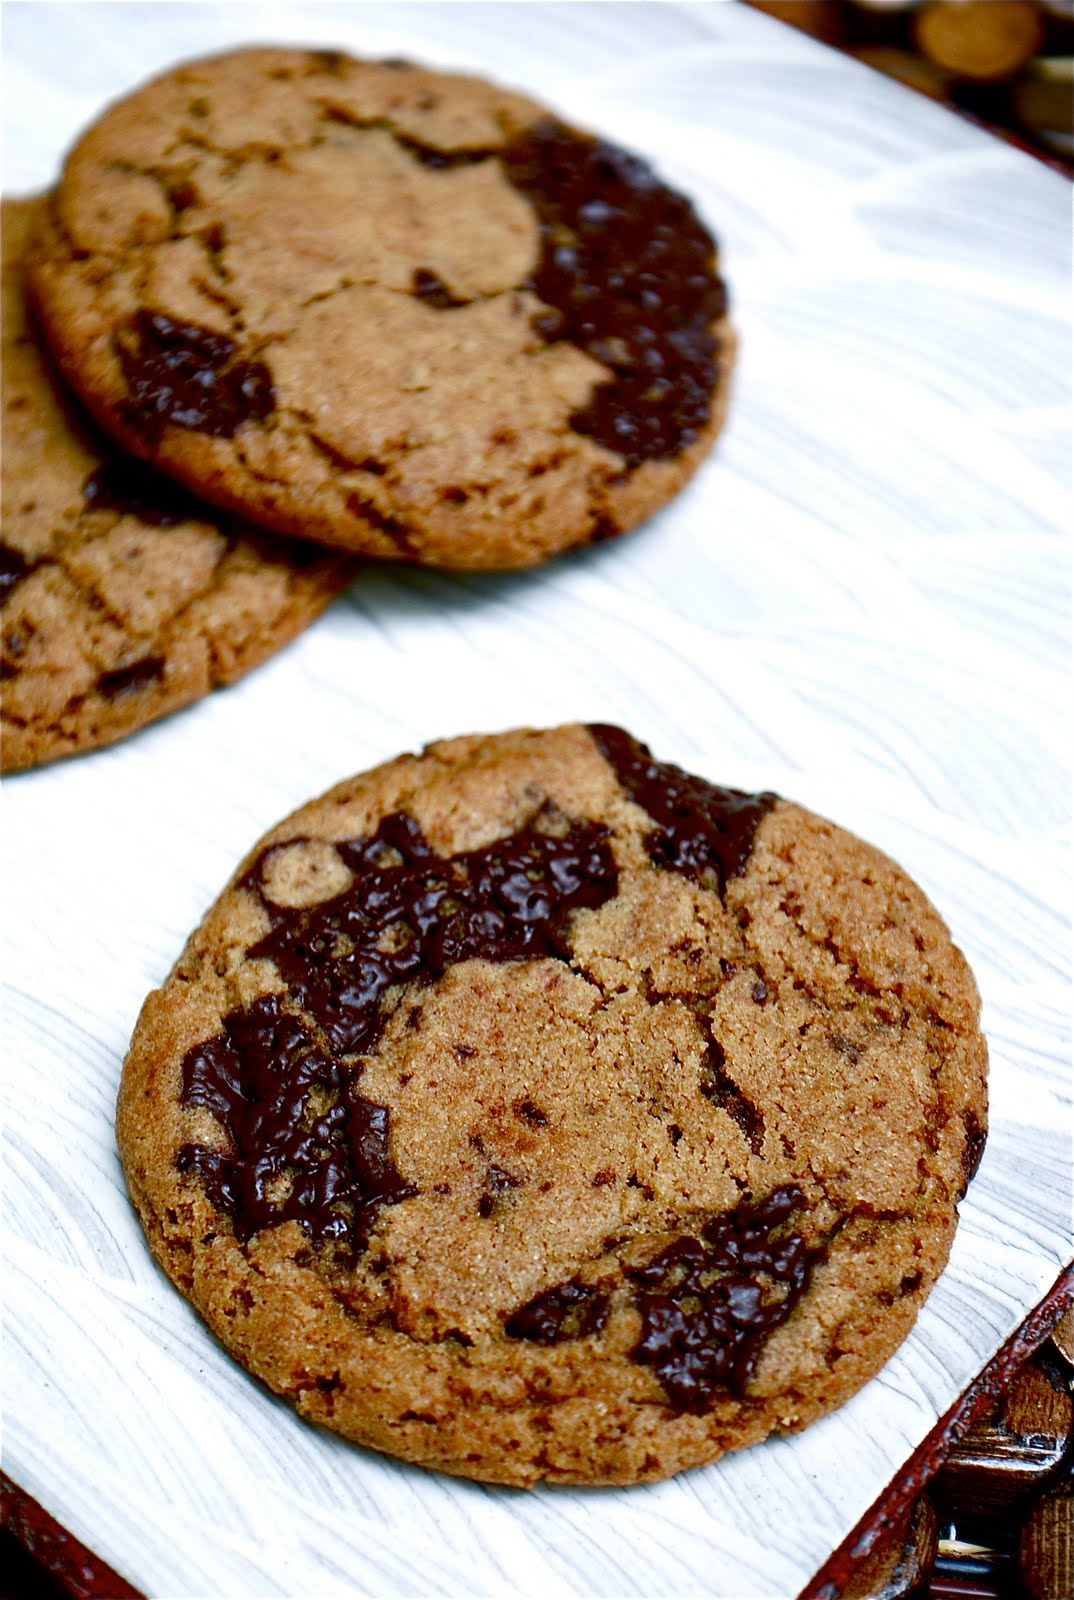 Blue Ridge Baker: Whole Wheat Chocolate Chip Cookies